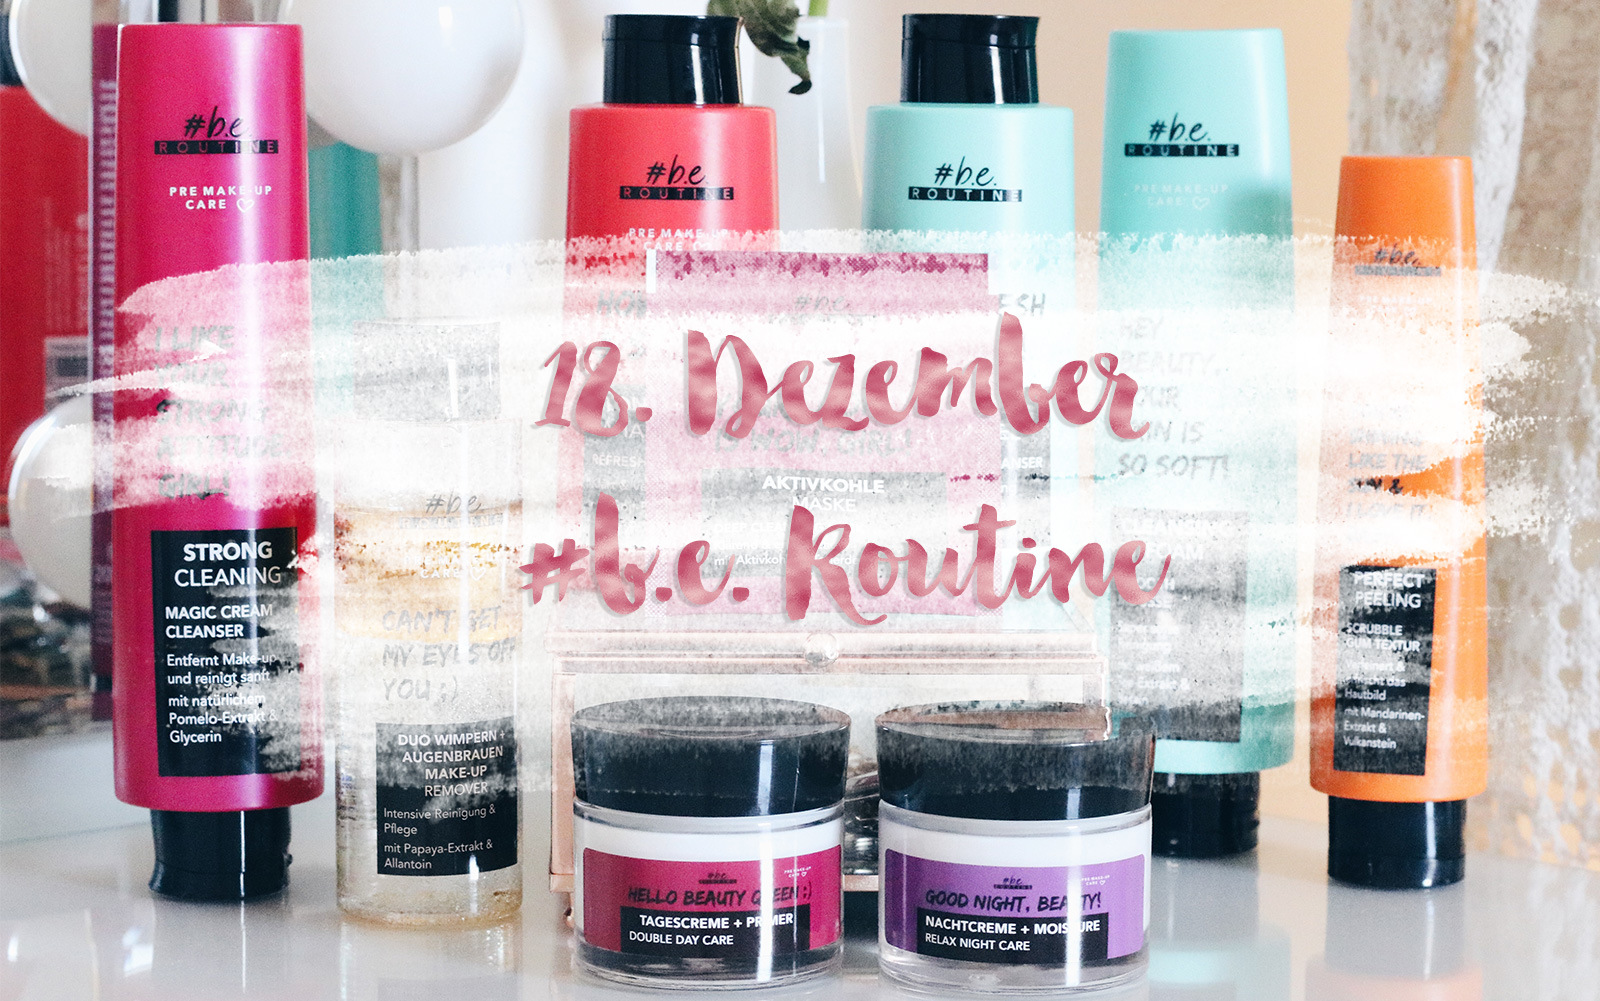 Mrs. Brightside Blogger-Adventskalender Blogger Blog Hamburg Adventskalender Gewinnspiel Beauty #b.e. Routine 3